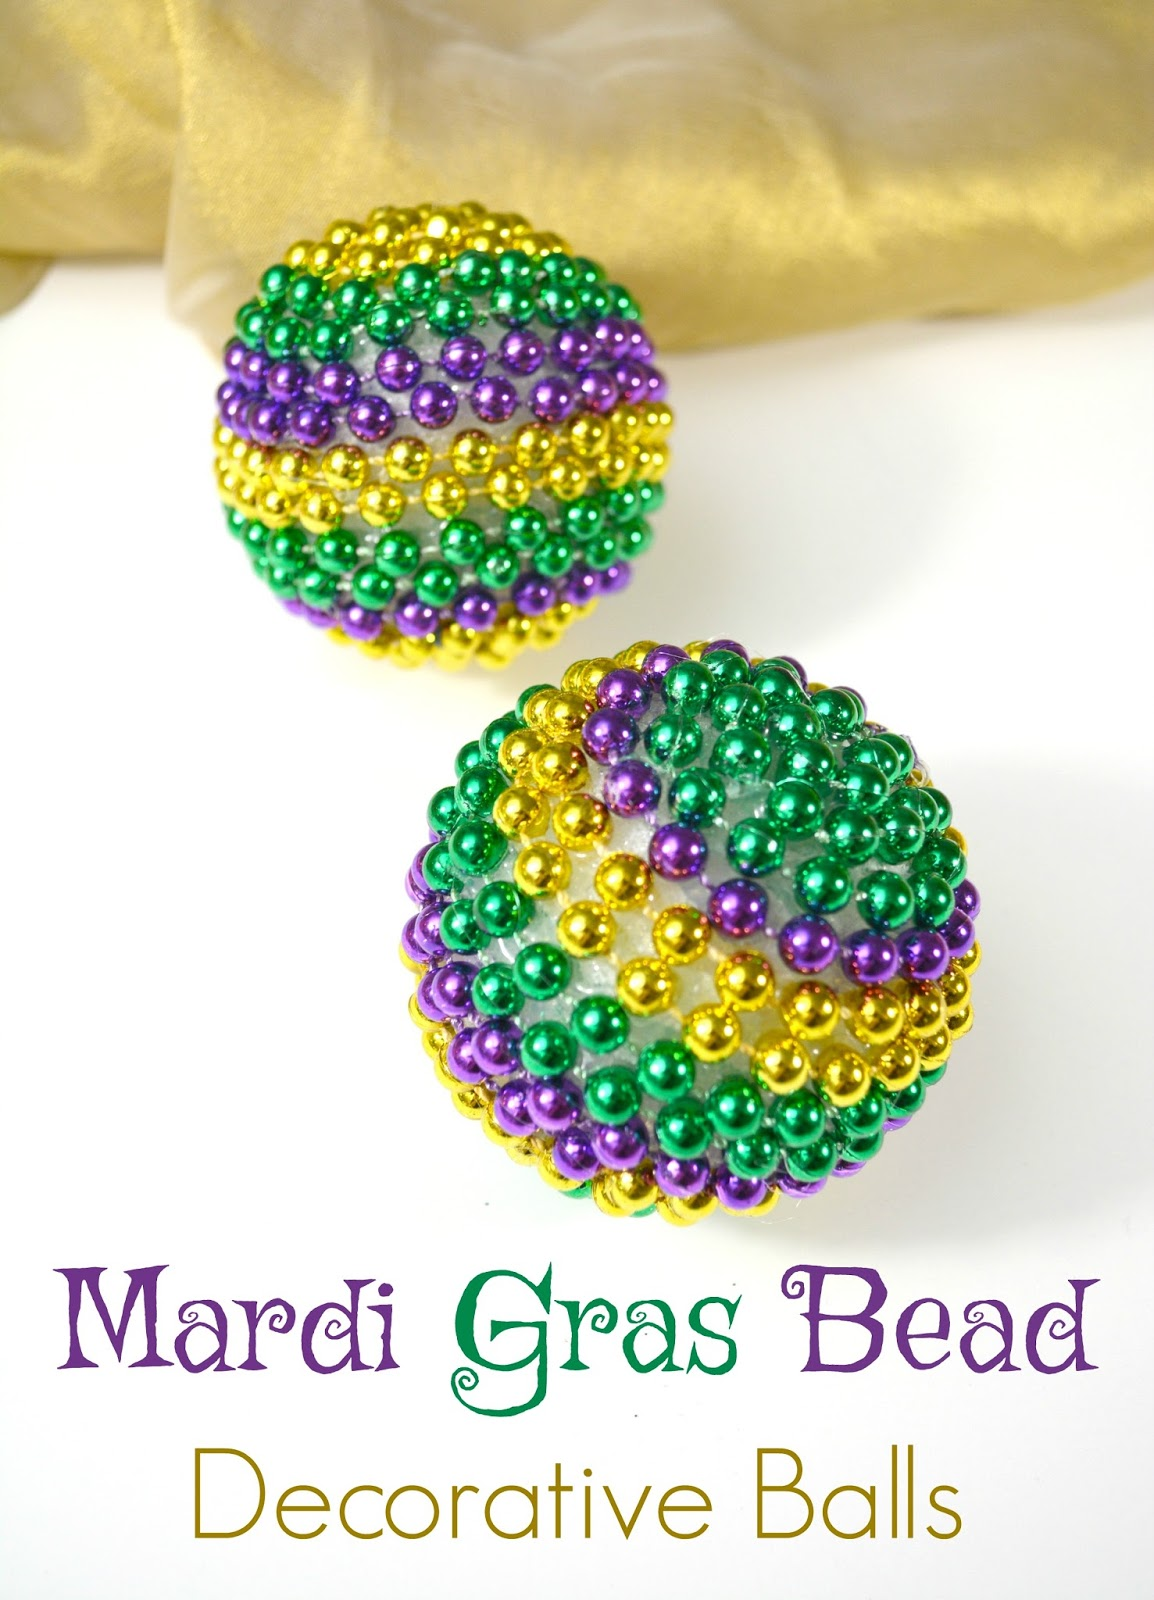 Crafts To Make With Mardi Gras Beads